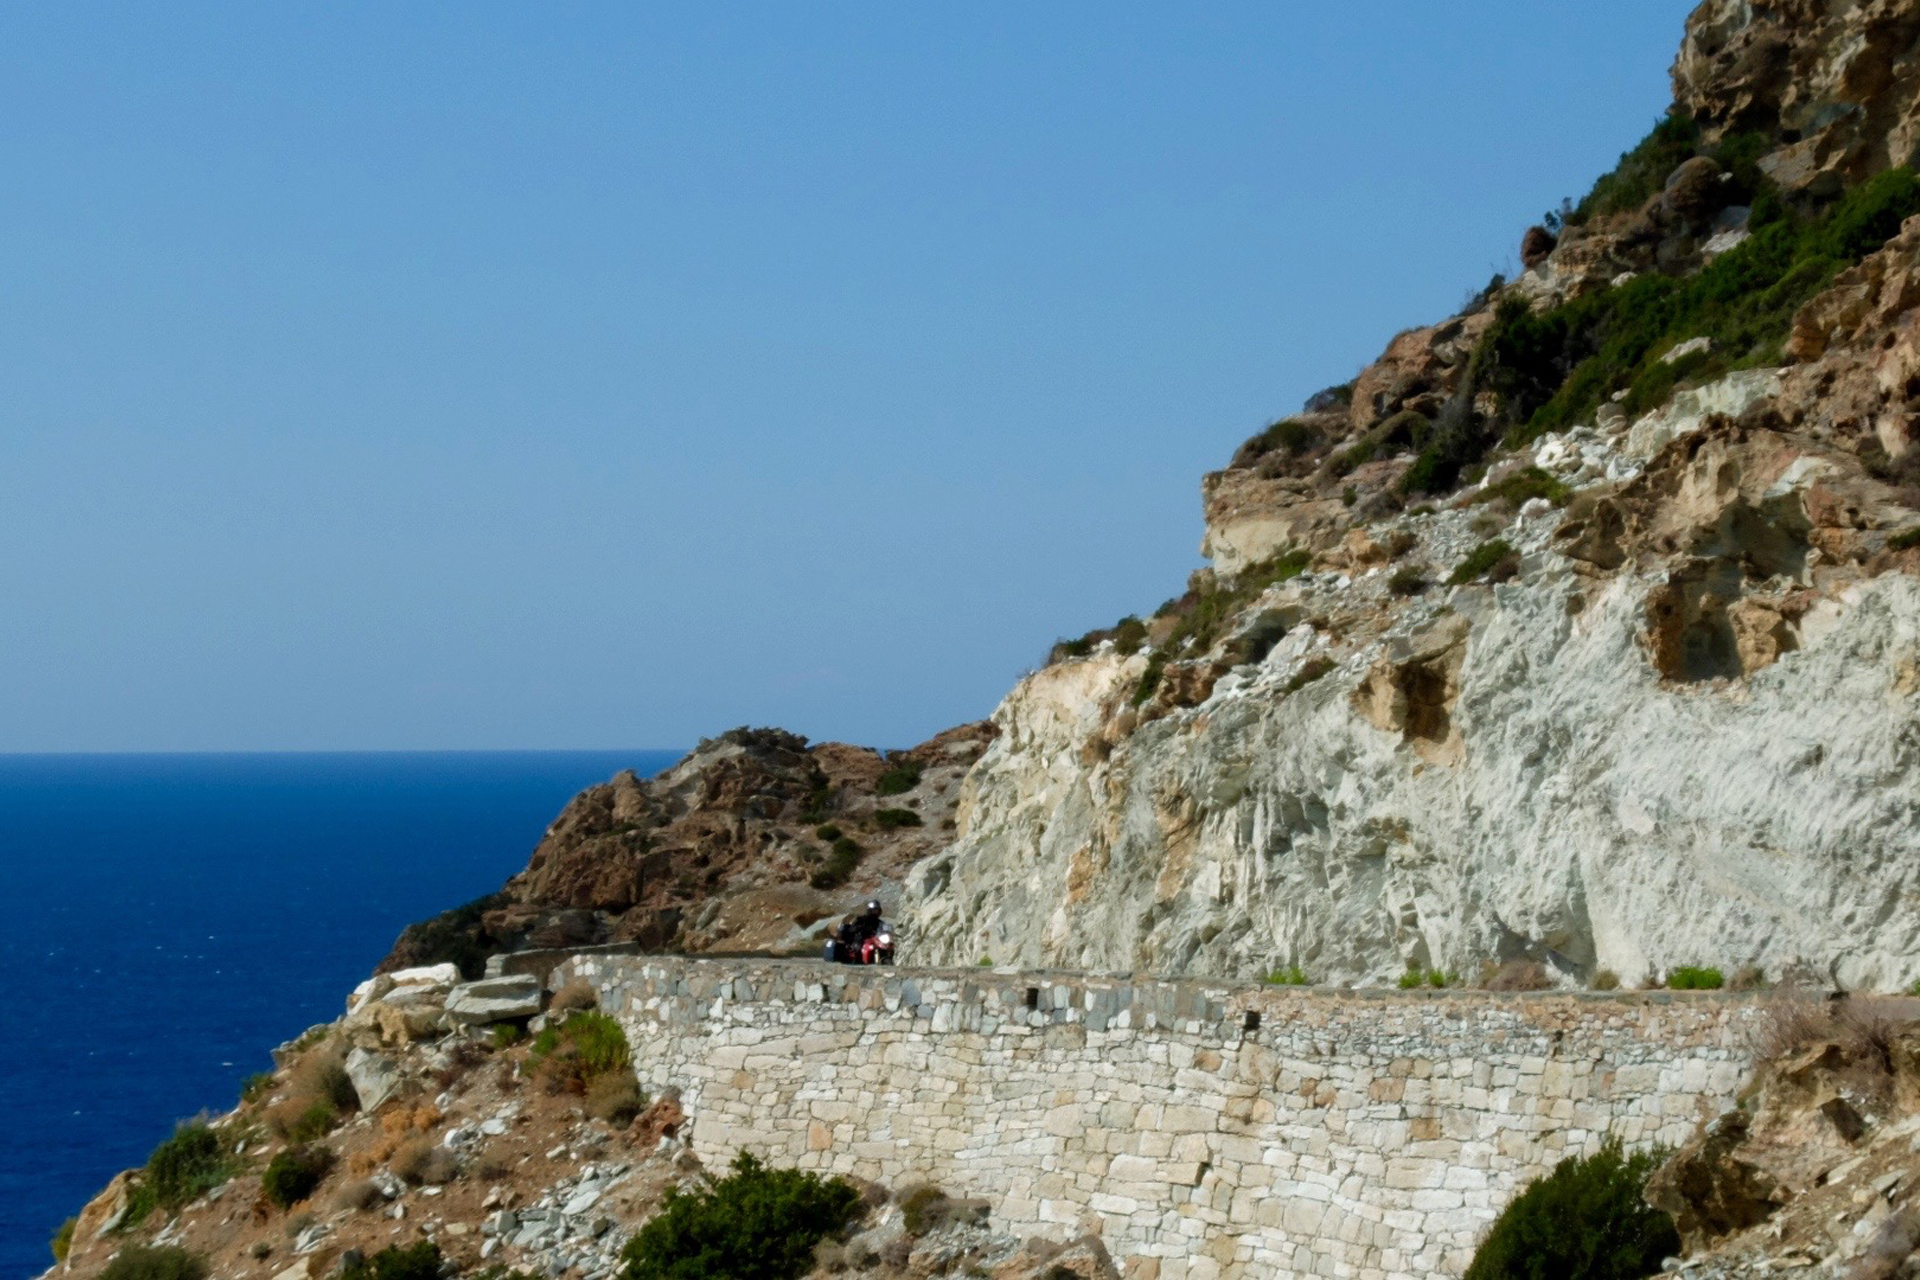 Motorcycles on Mountain Roads in Corsica